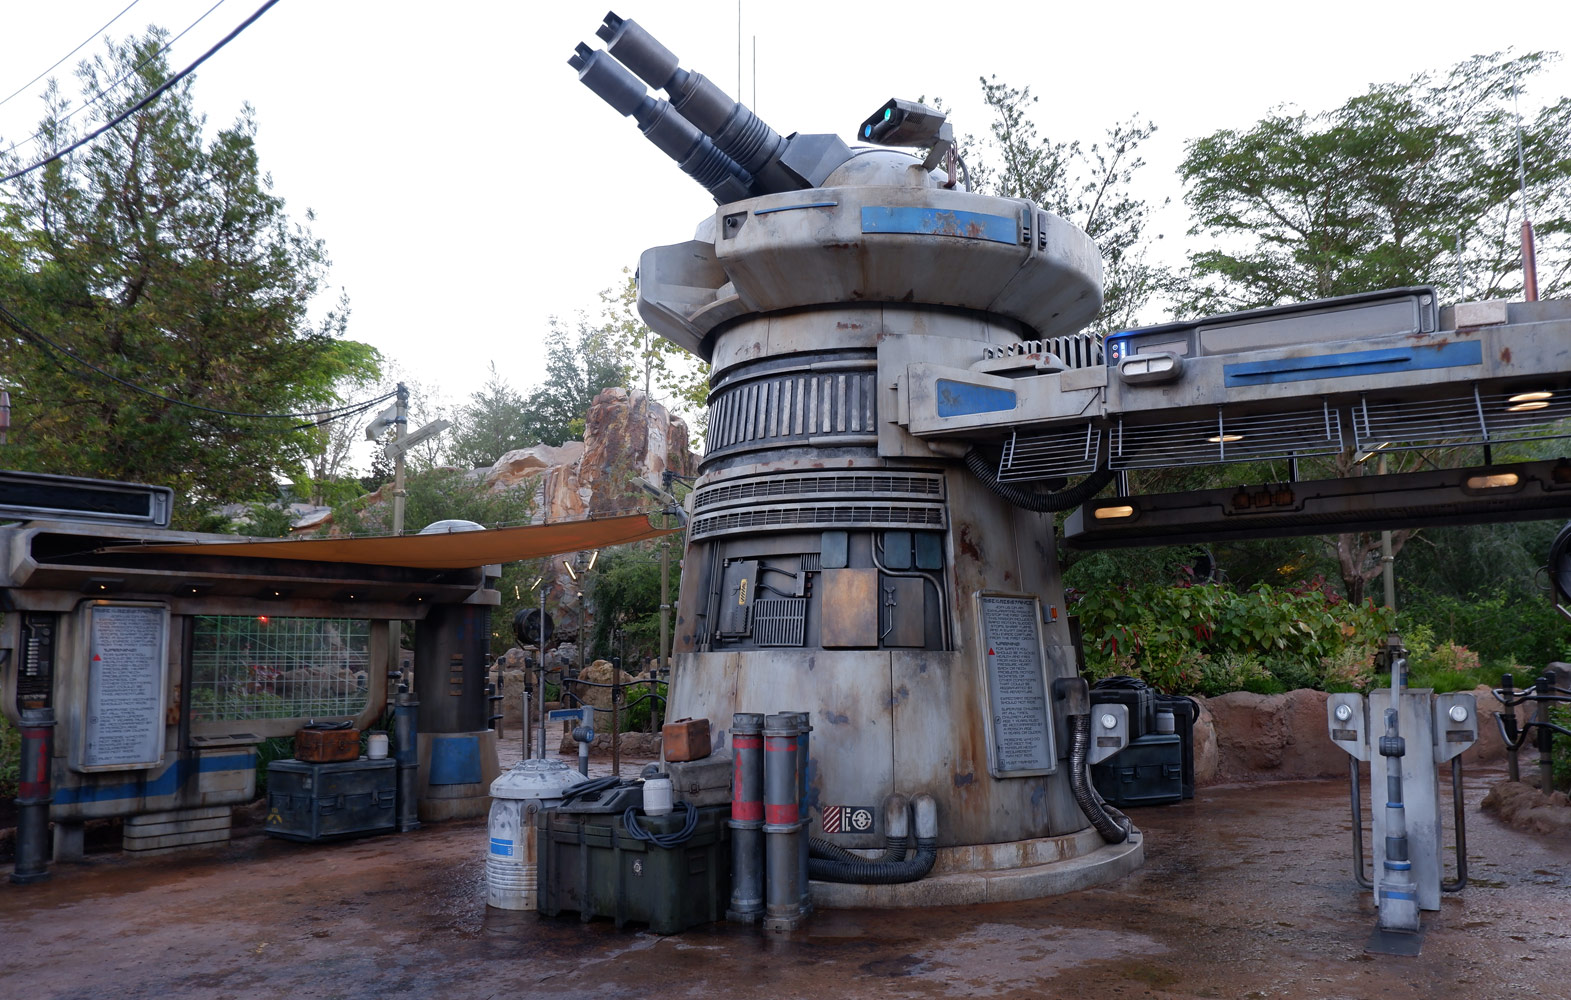 Star Wars: Rise of the Resistance new ride at Walt Disney World